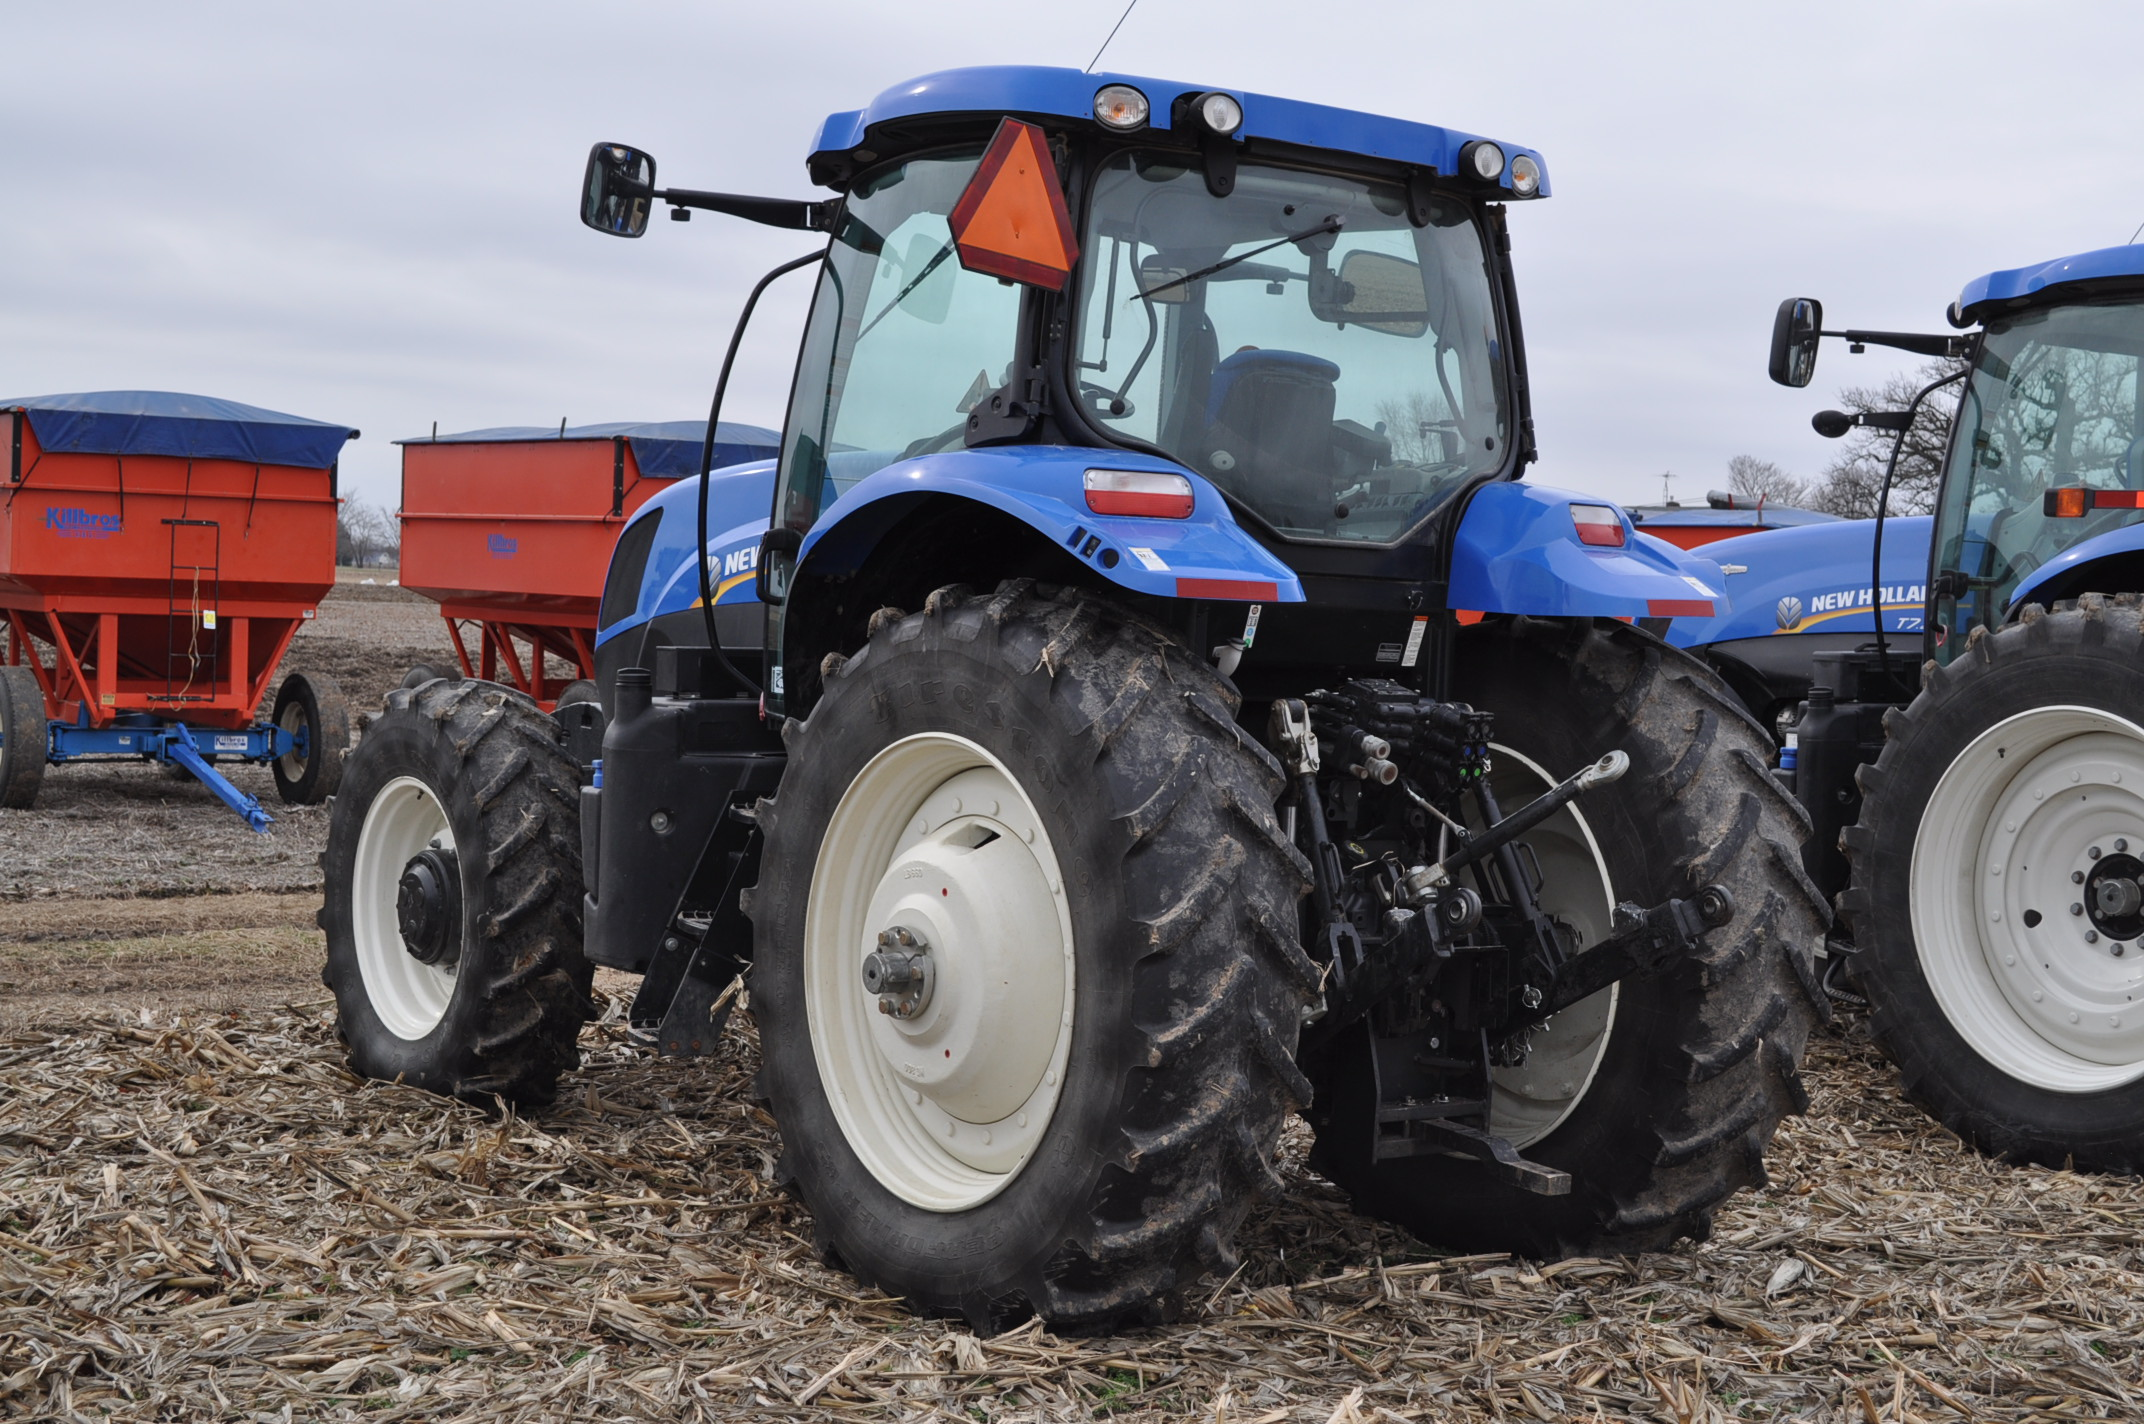 New Holland T7.210 MFWD tractor, 460/85 R 42 rear, 380/85 R 30 Firestone front, Super Steer - Image 2 of 24